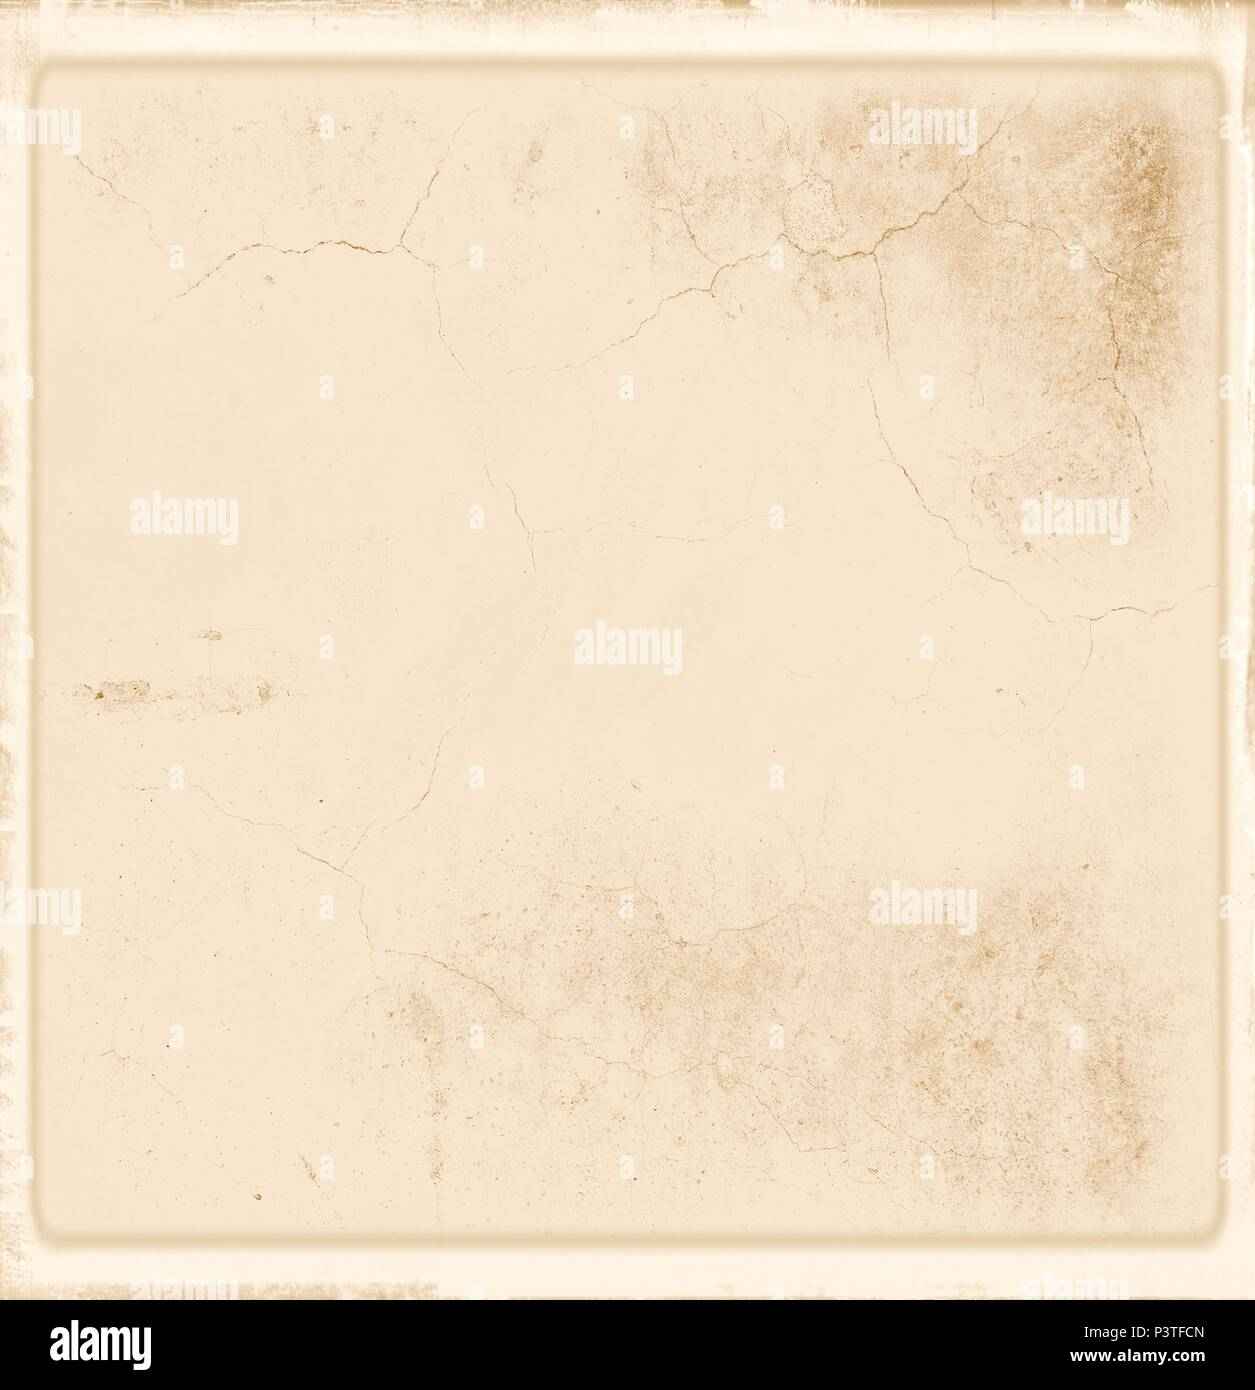 Vintage texture background in sepia tones. - Stock Image